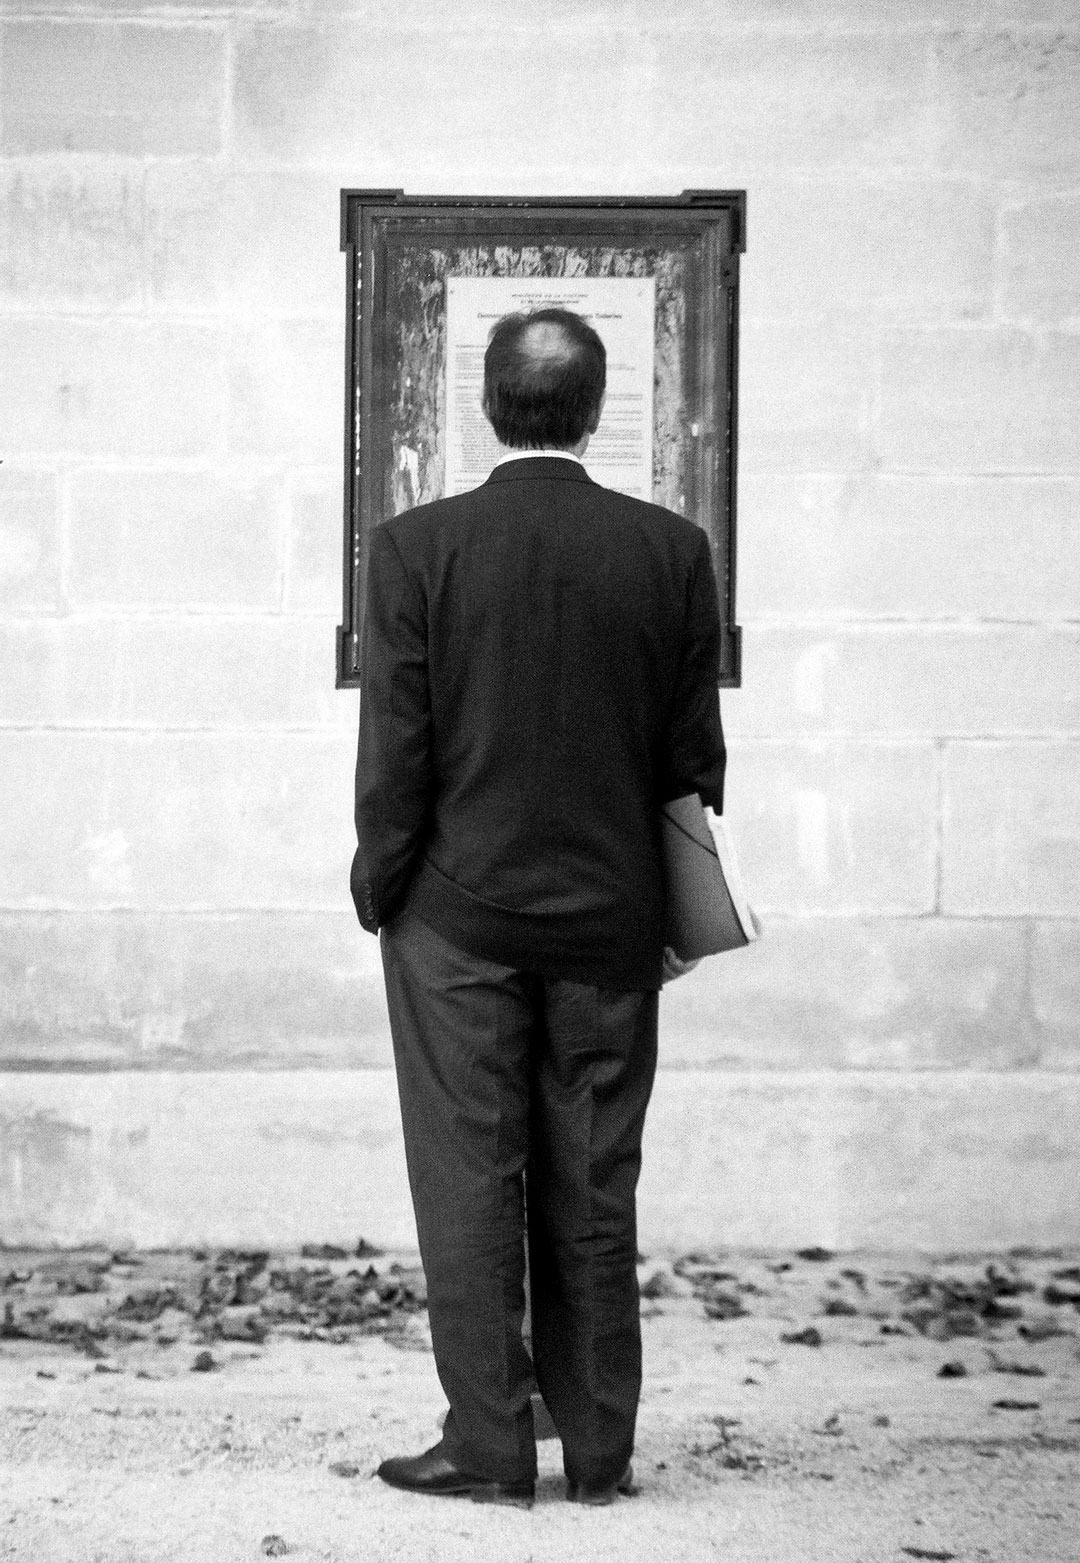 Black Tie Man - Paris - France - 1994